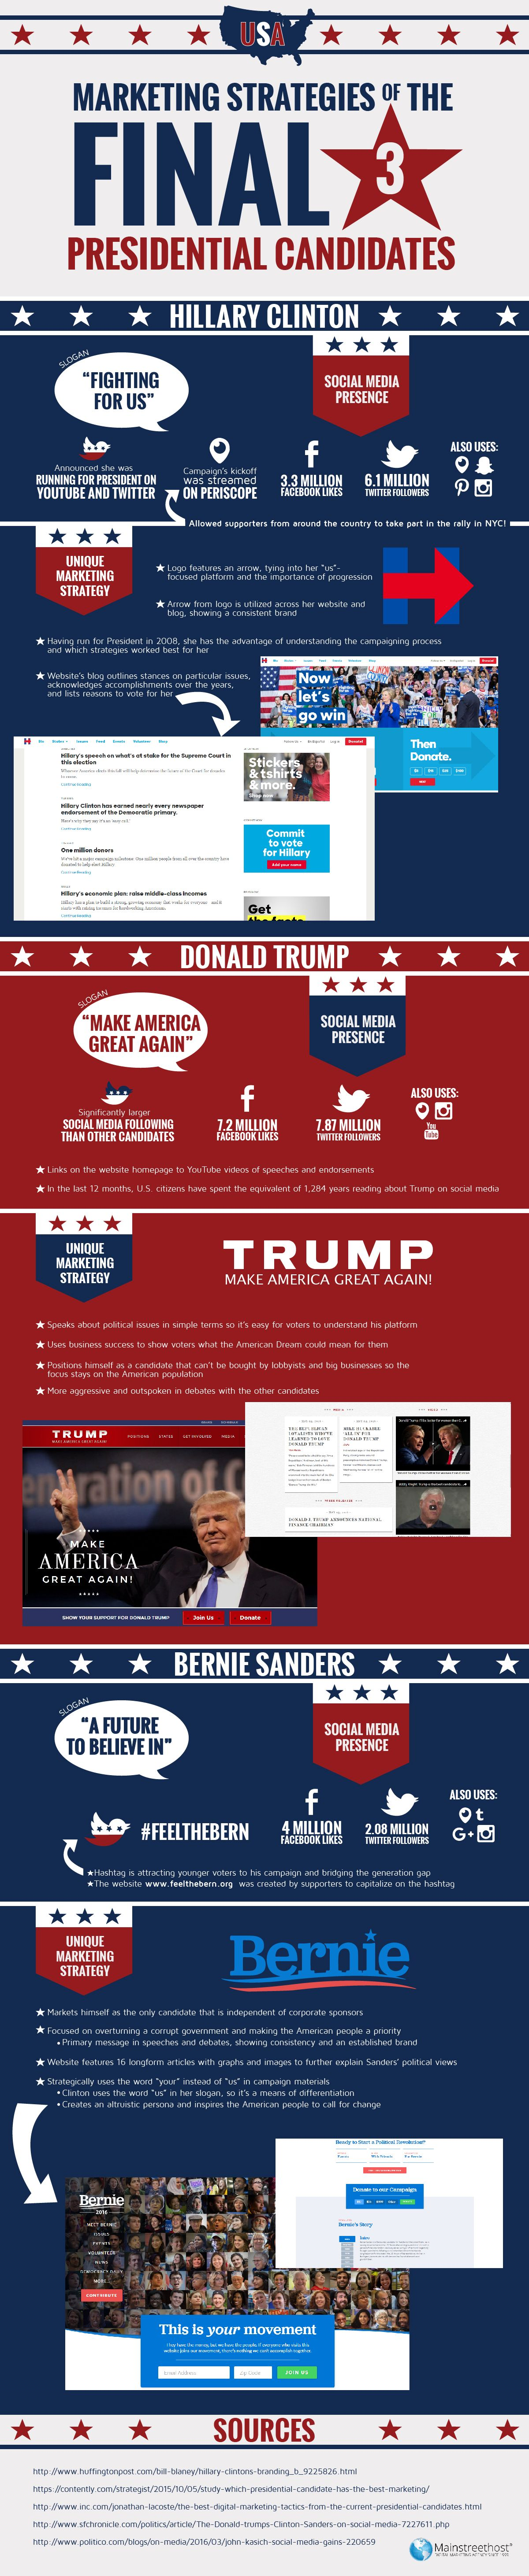 Marketing Strategies Of The Final 3 Presidential Candidates #Infographic